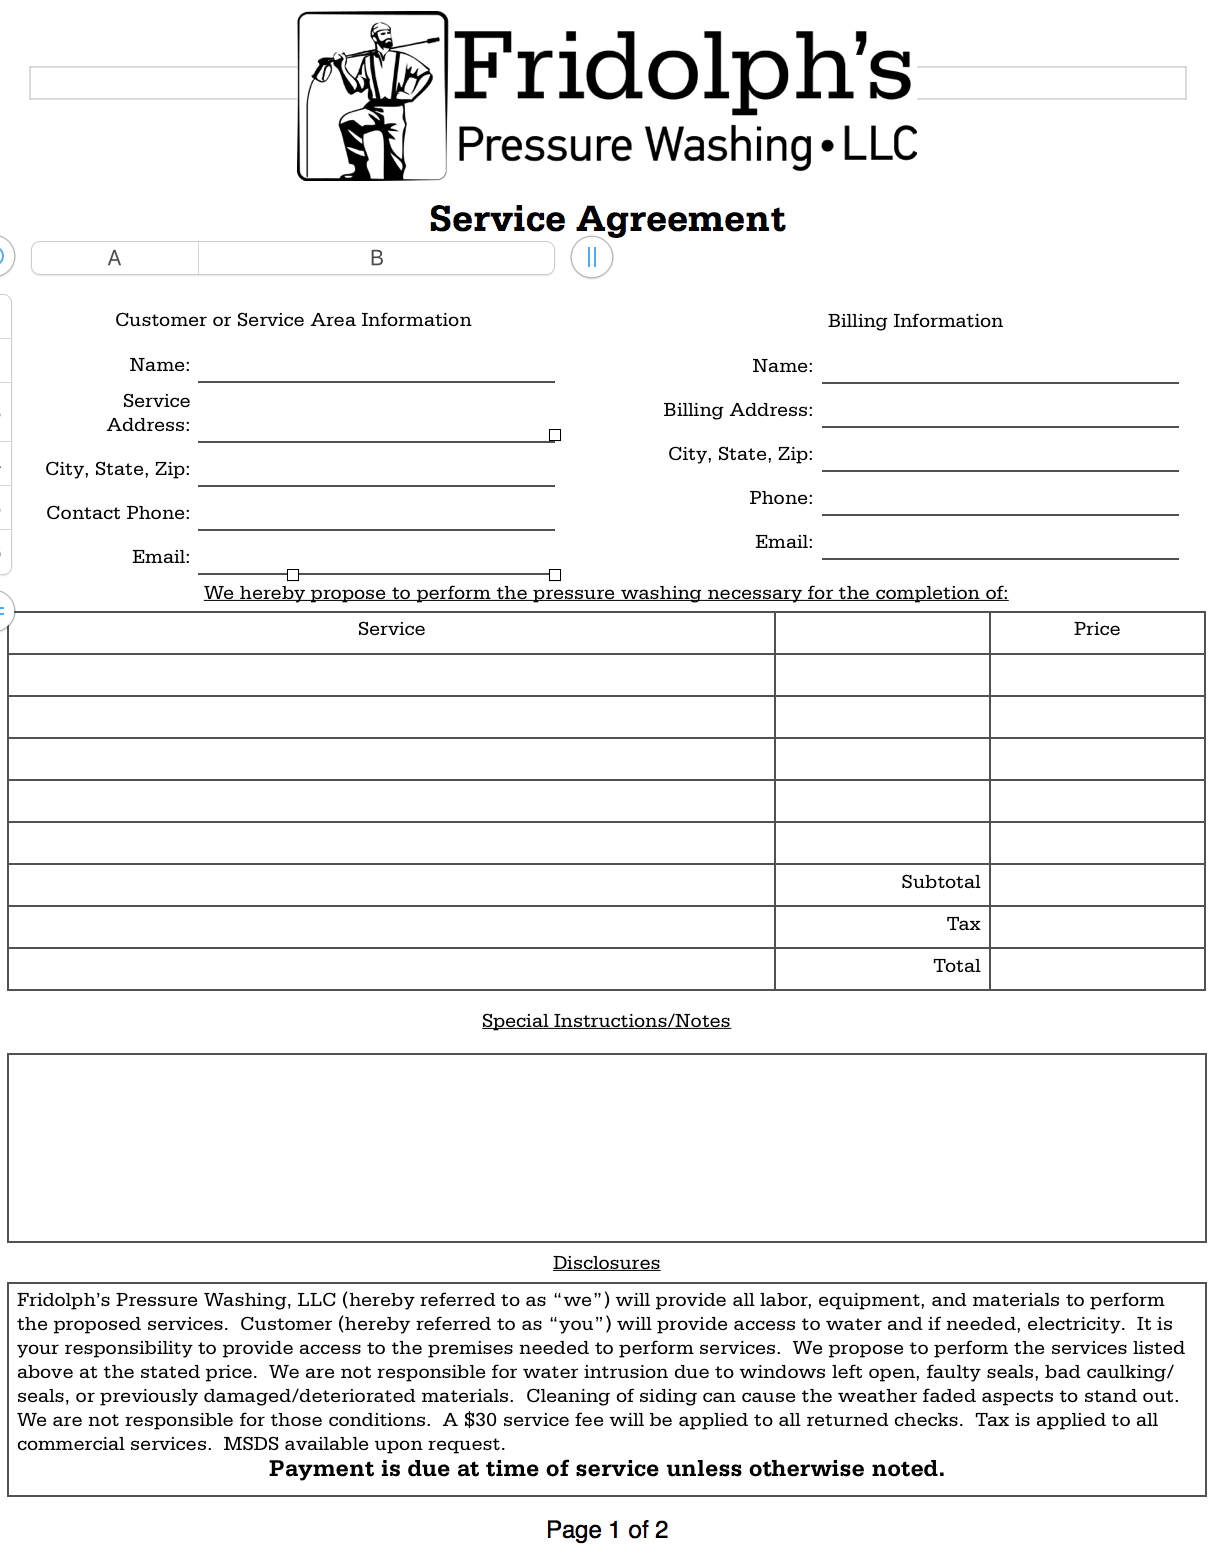 Service agreement - Residential - Pressure Washing Resource